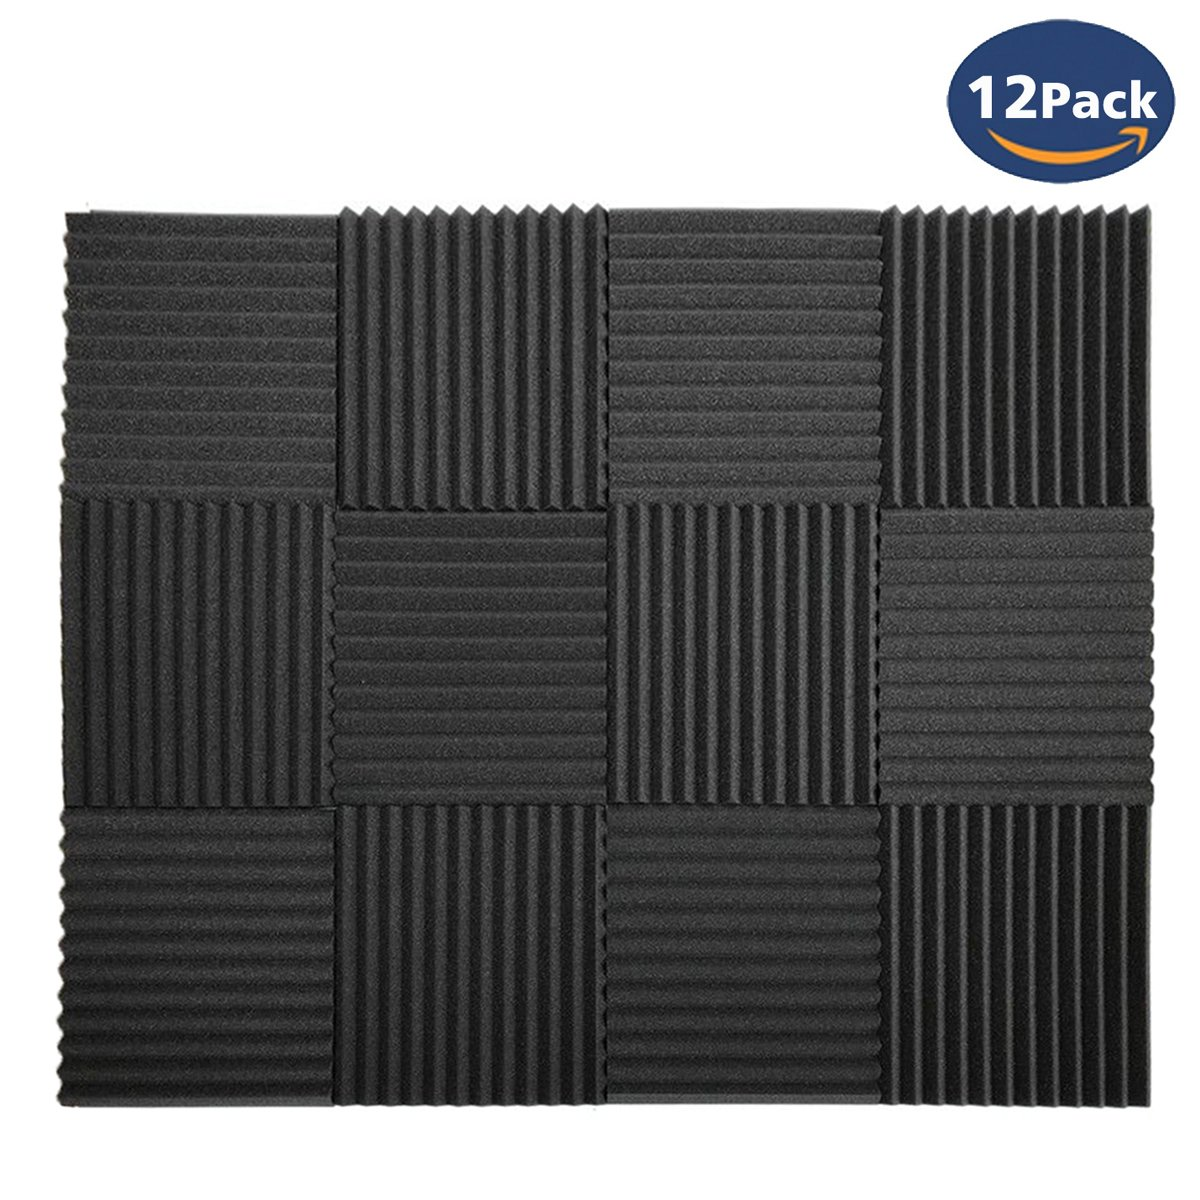 12 Pack Set Acoustic Panels, Acoustic Foam Panels, Studio Wedge Tiles, Sound Panels wedges Soundproof Sound Insulation Absorbing 1'' X 12'' X 12'' by Fstop Labs